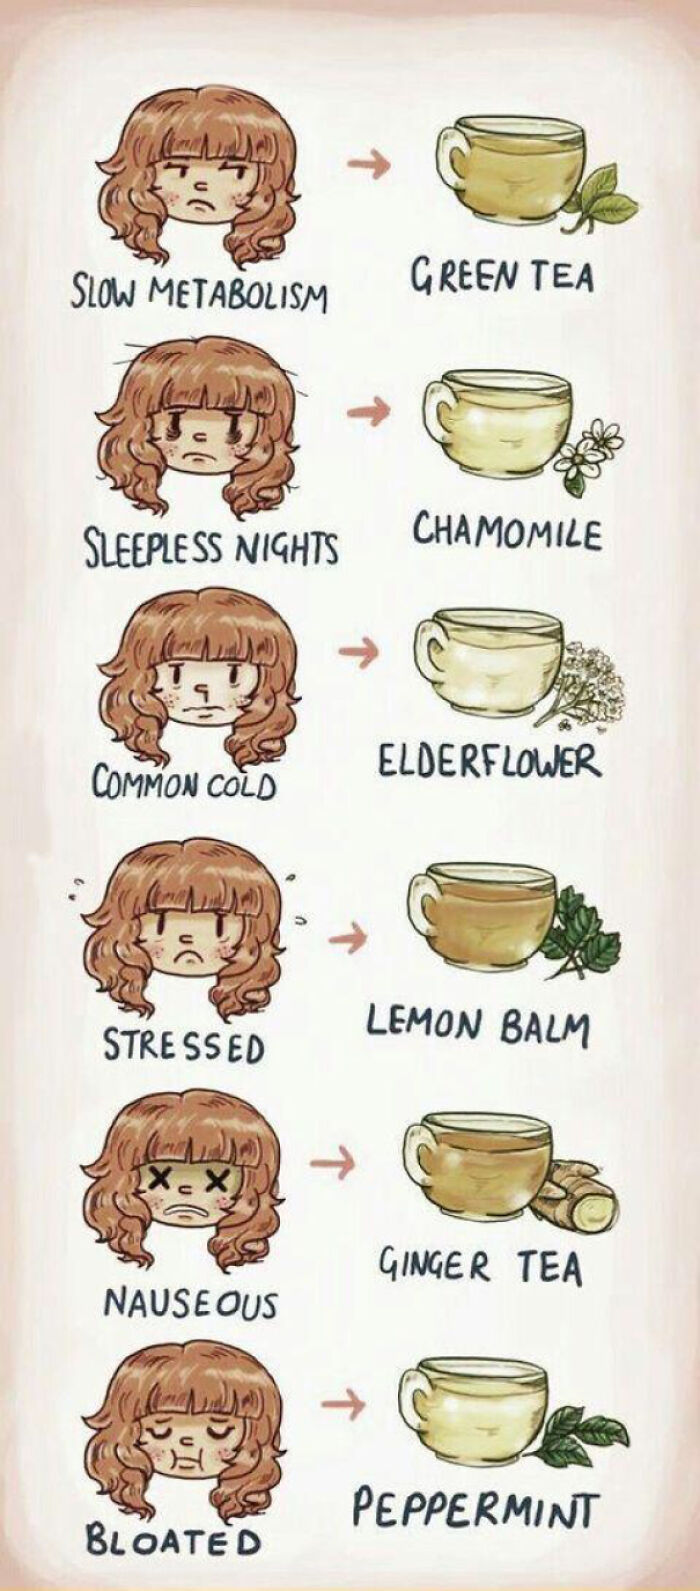 A Quick Guide To Tea!